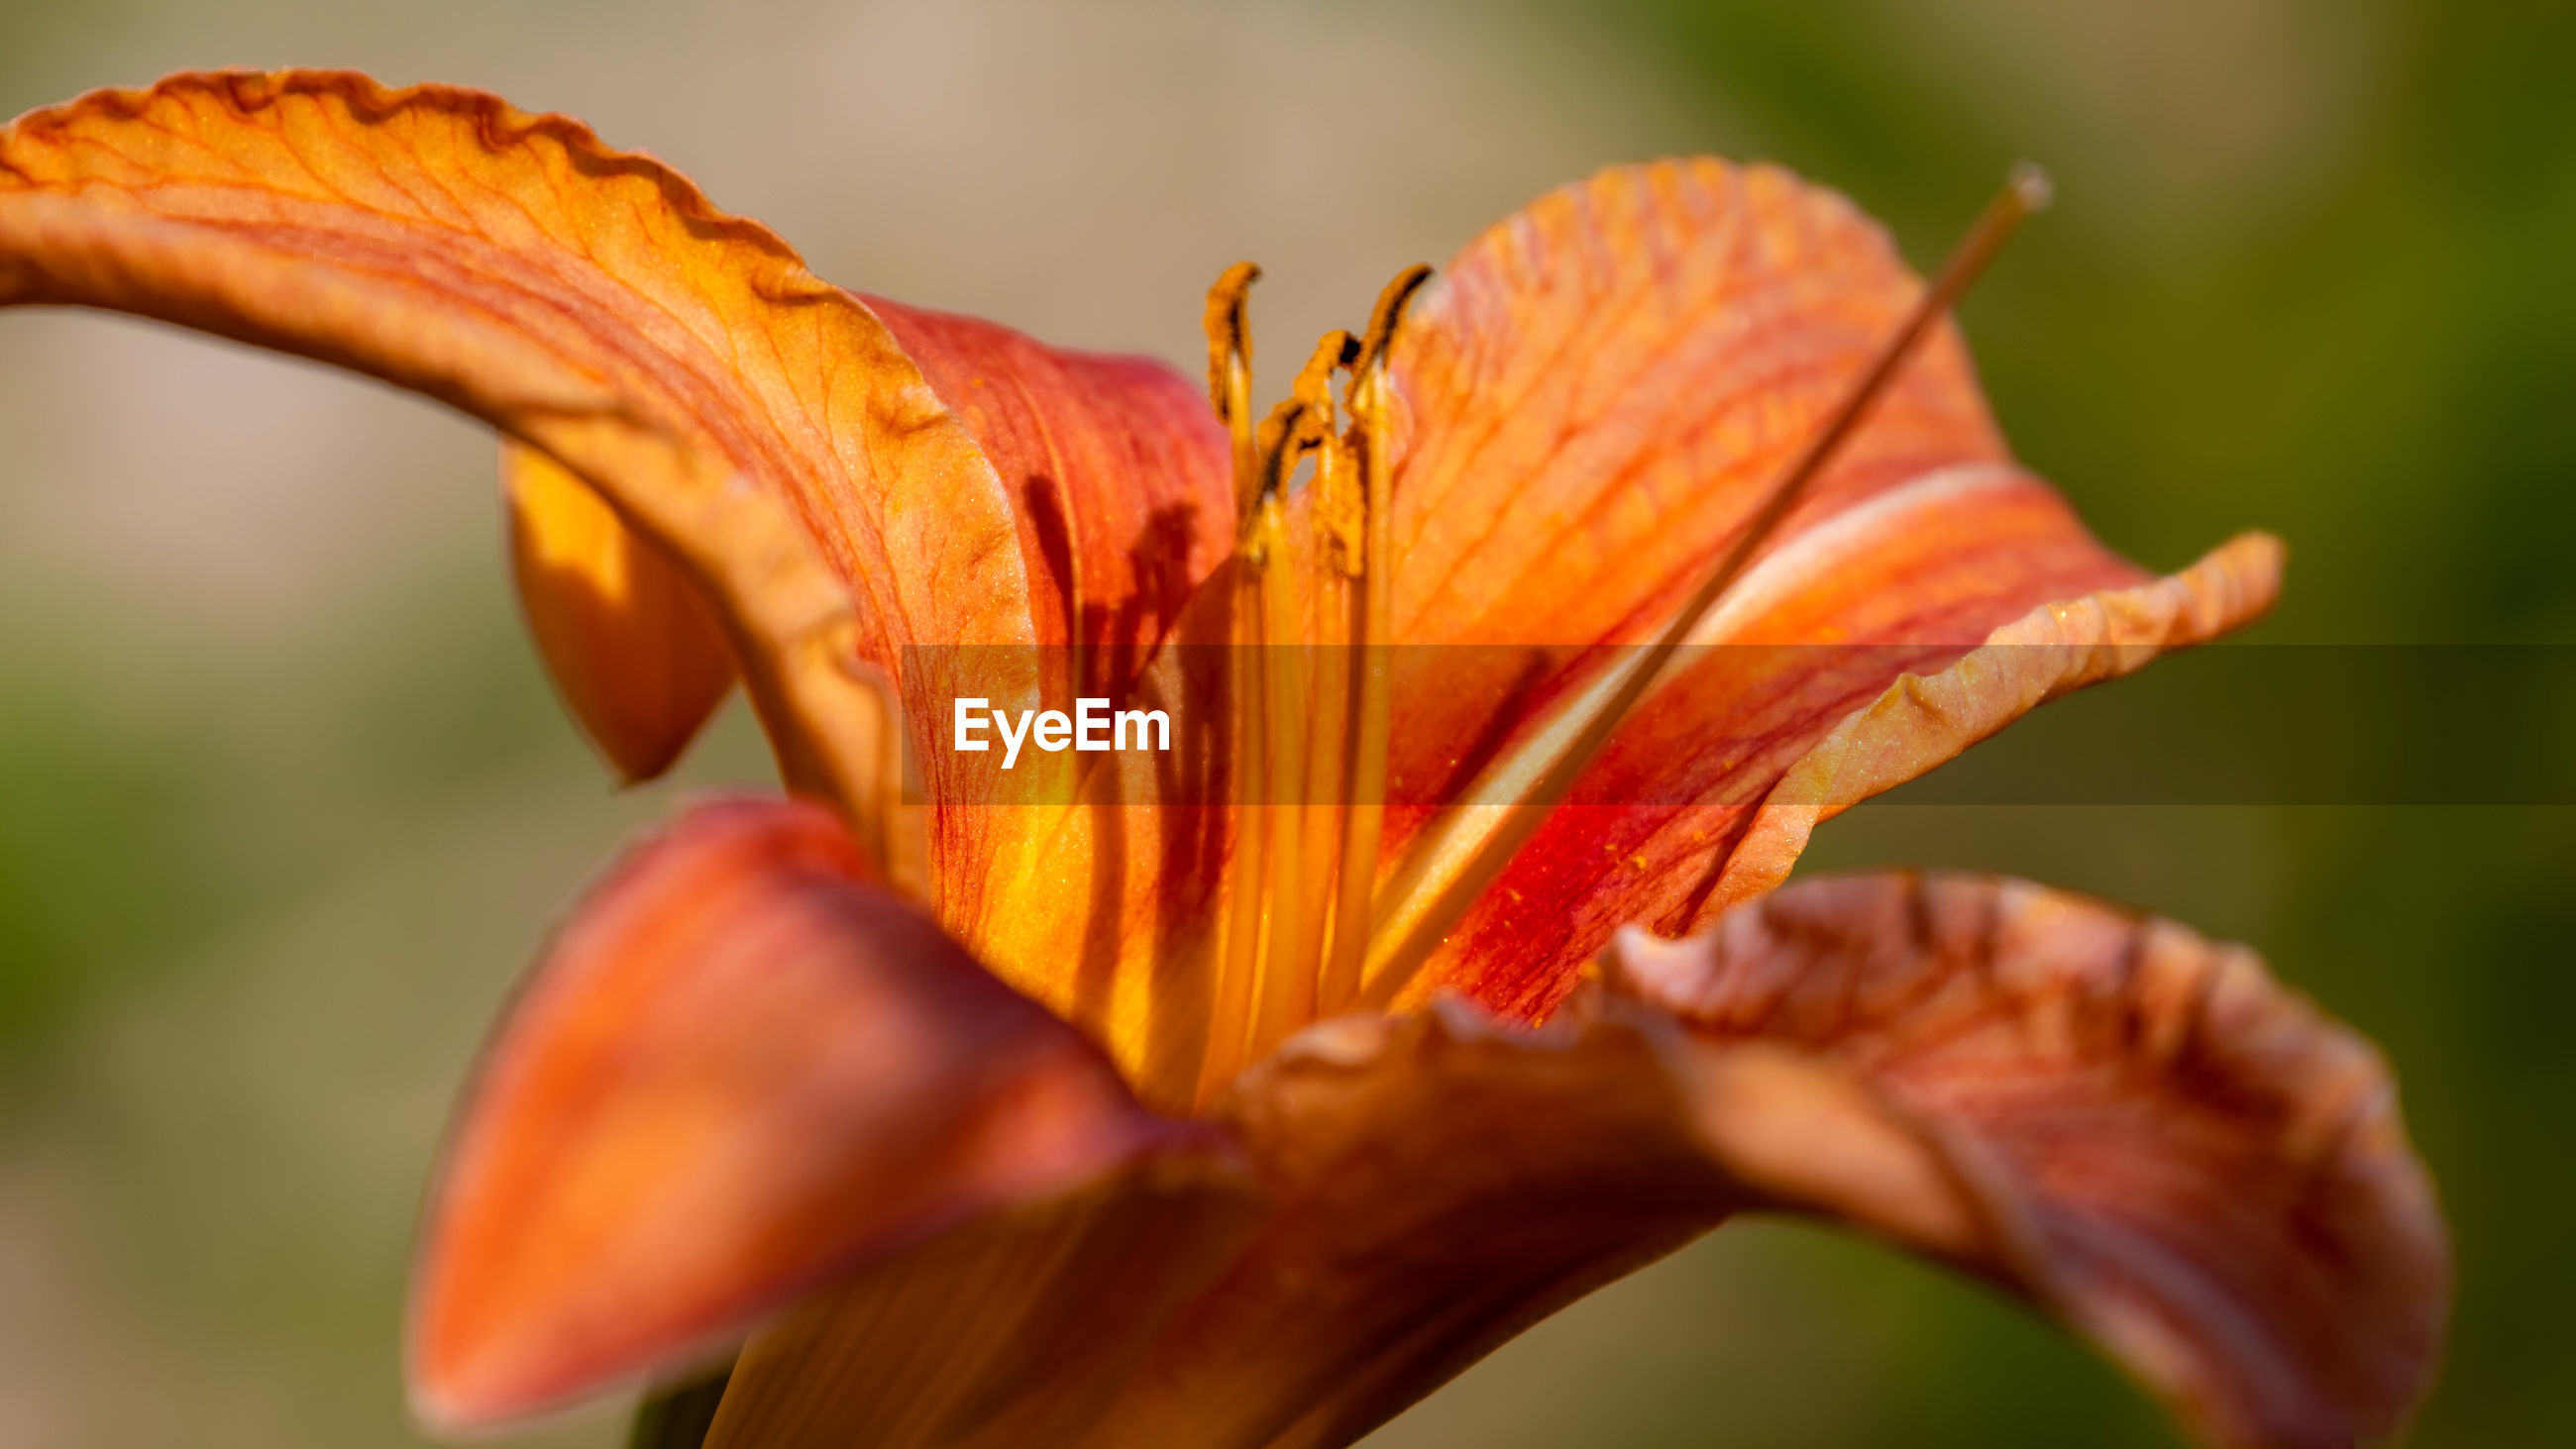 CLOSE-UP OF ORANGE DAY LILY FLOWER